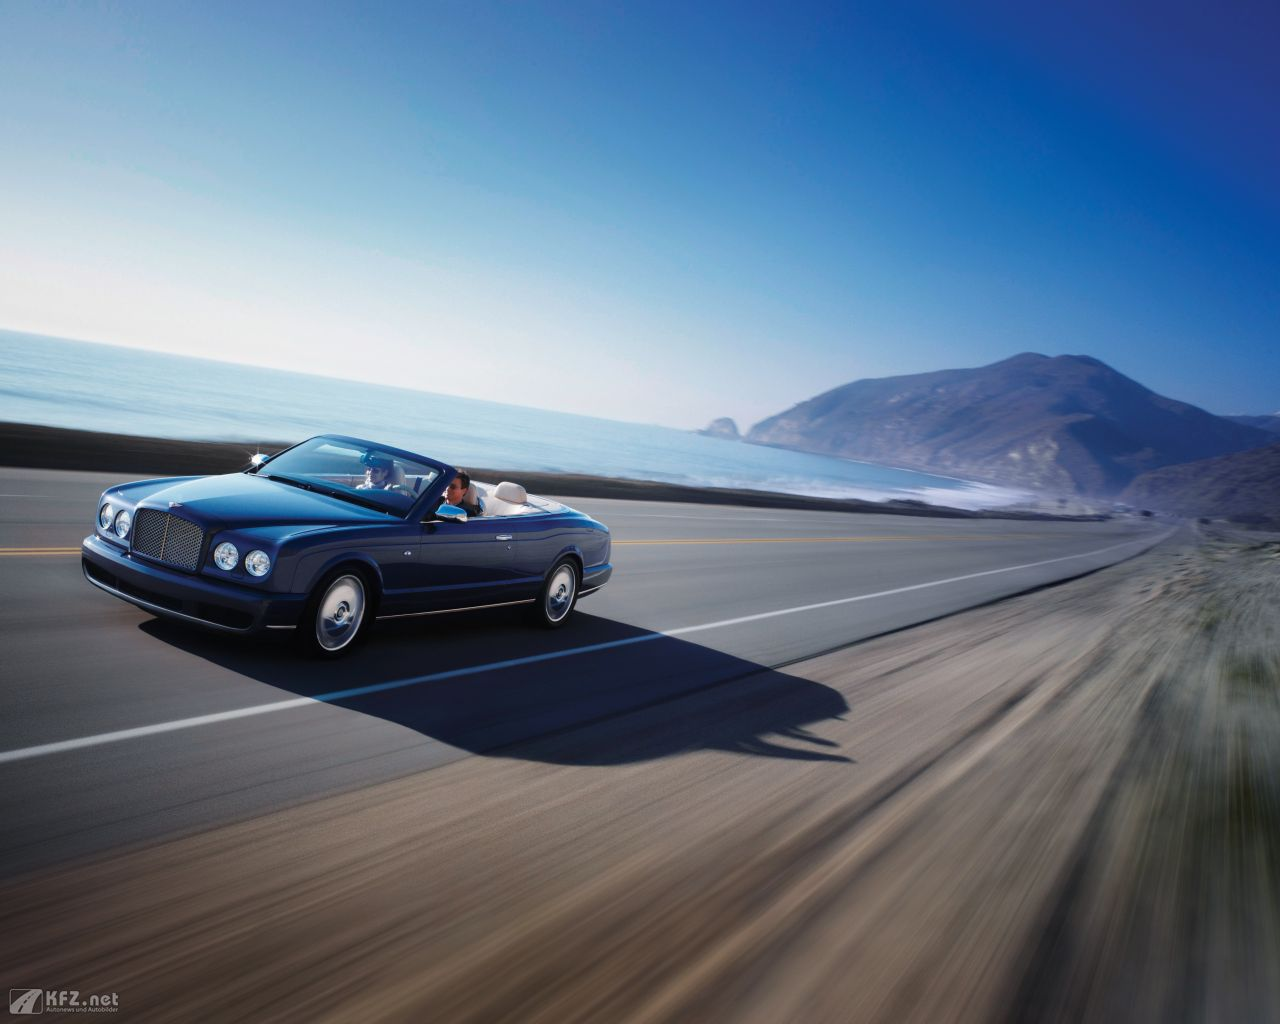 bentley-azure-1280x1024-5